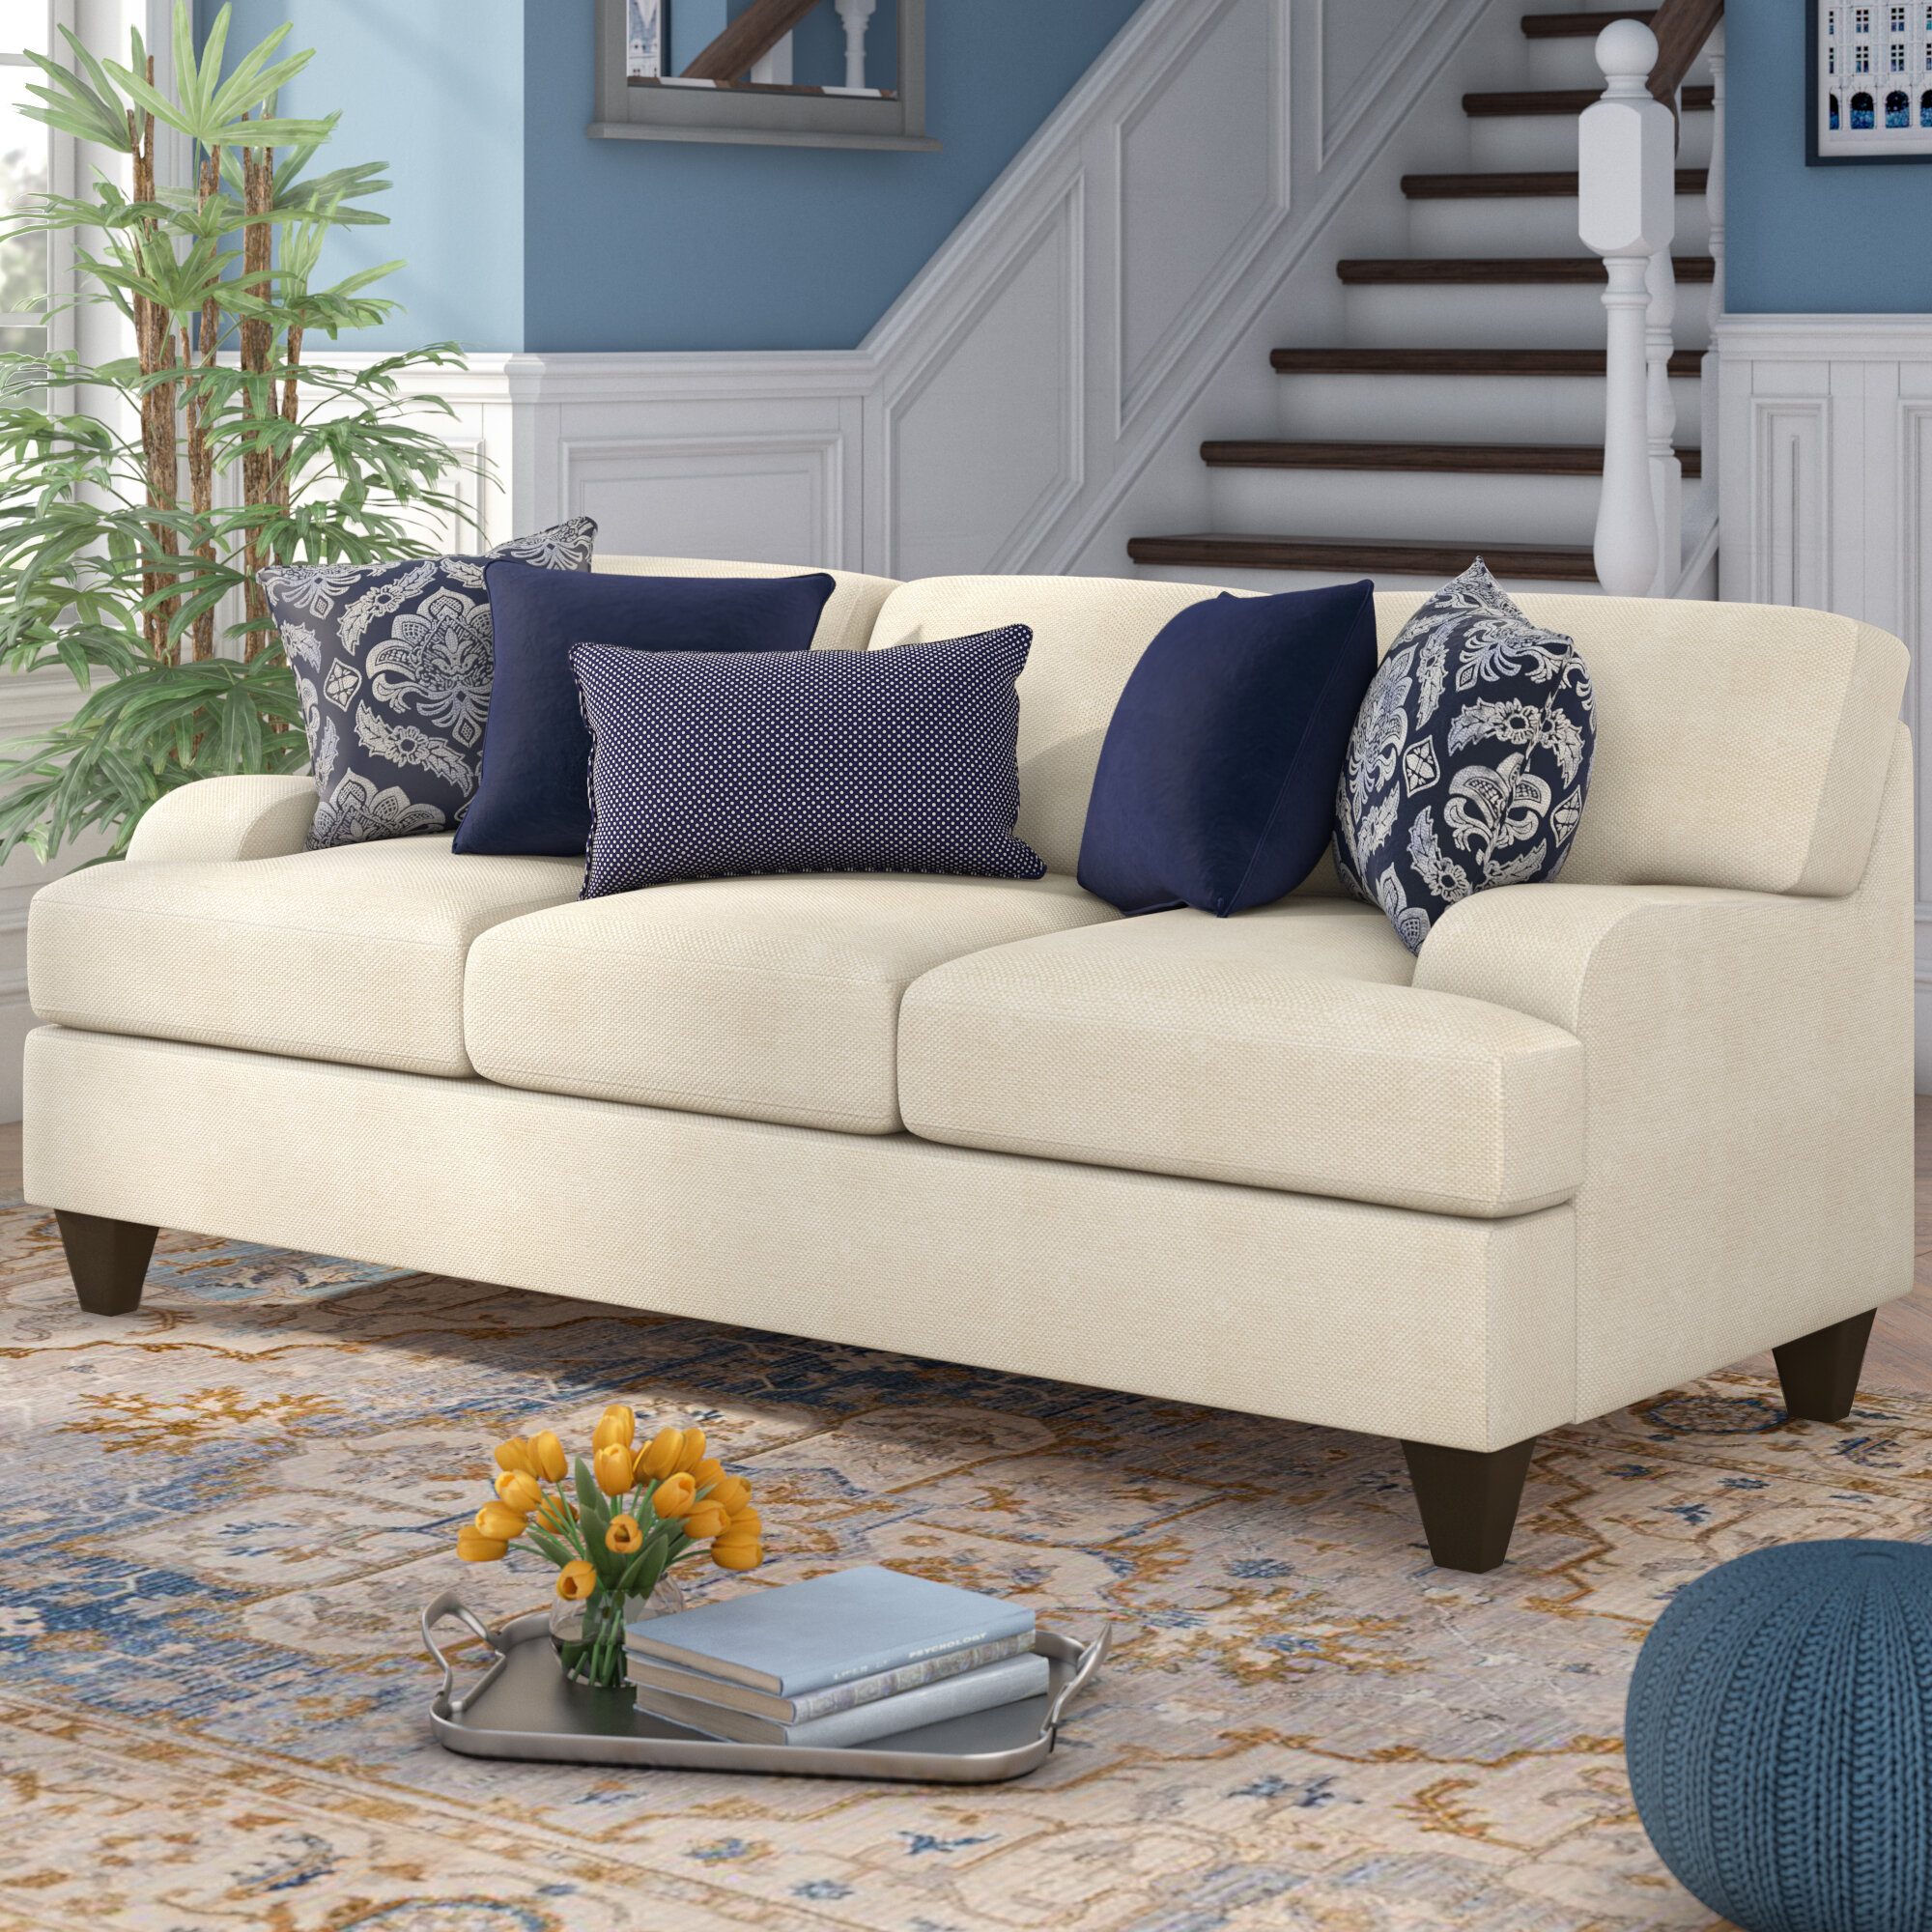 seat sectional tufted sofa with products upholstery onyx industries piece item casual simmons furniture height trim threshold back manhattan width